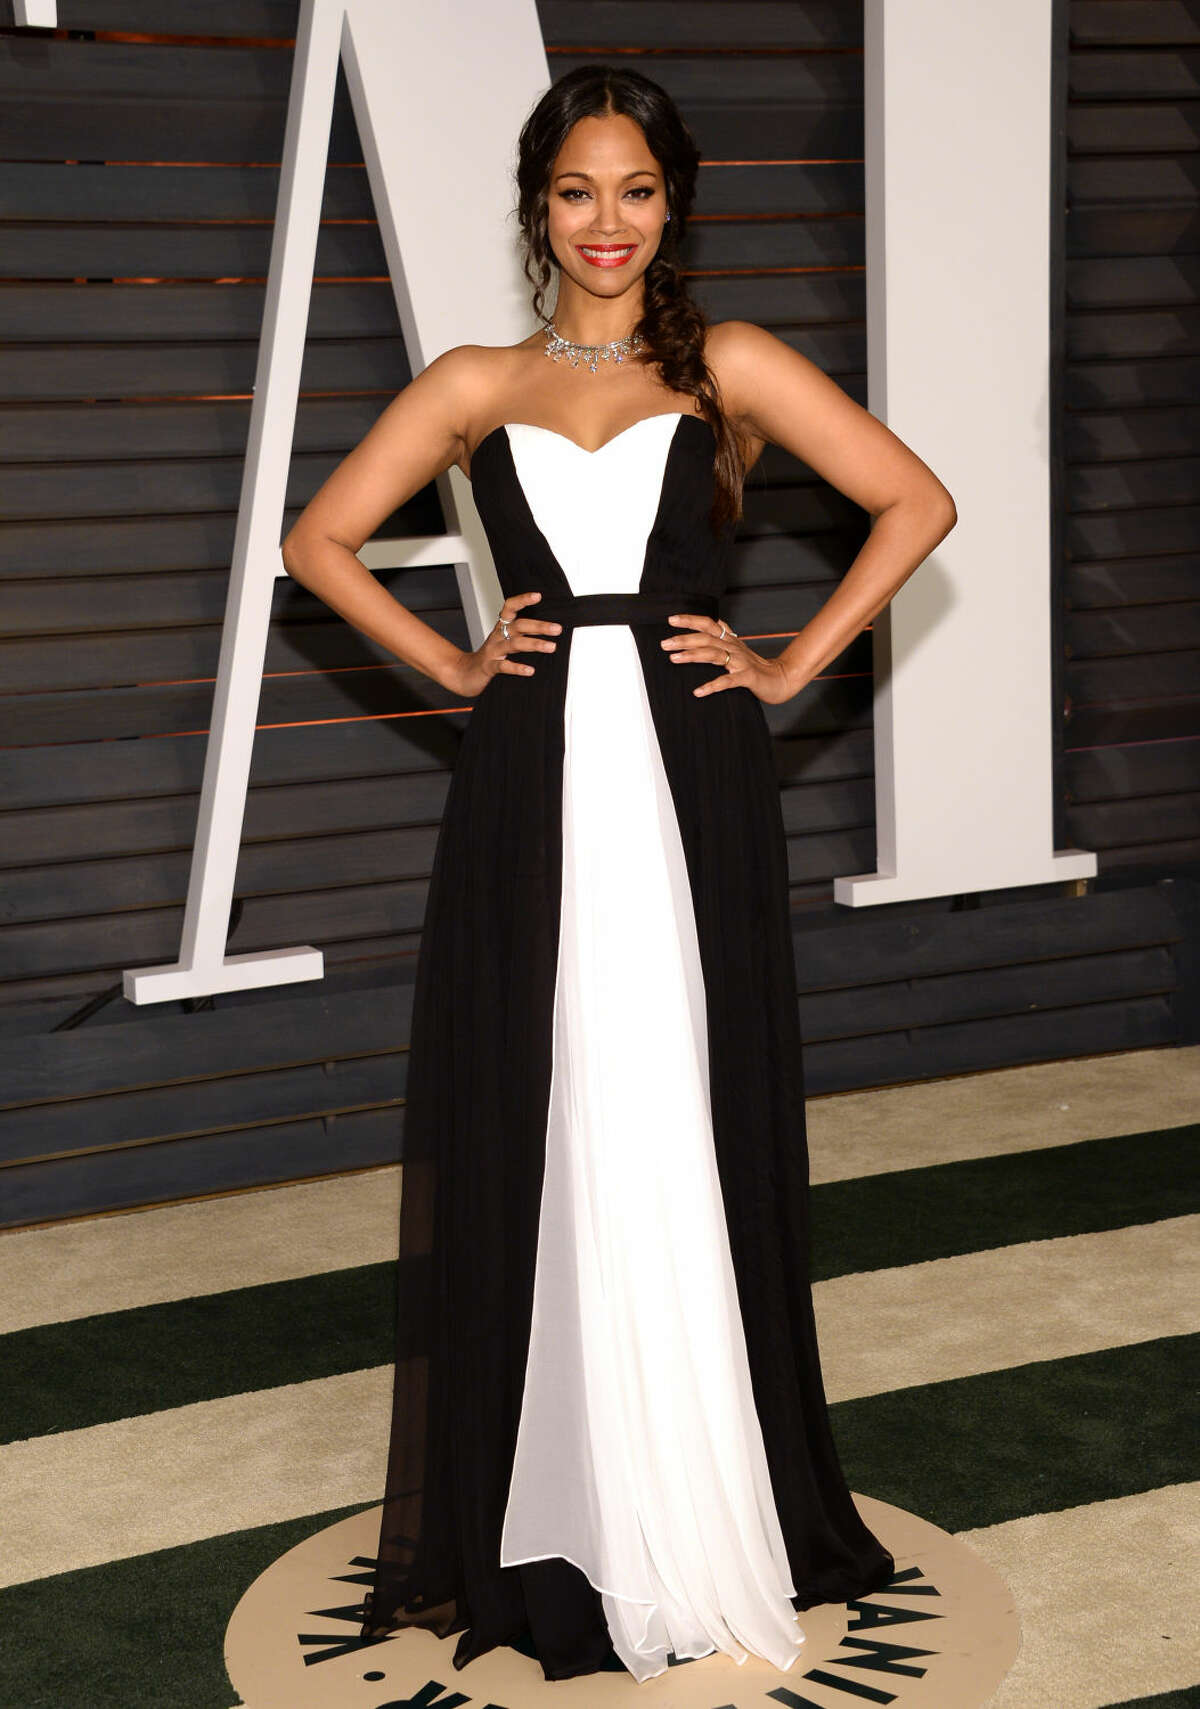 Zoe Saldana arrives at the 2015 Vanity Fair Oscar Party on Sunday, Feb. 22, 2015, in Beverly Hills, Calif. (Photo by Evan Agostini/Invision/AP)